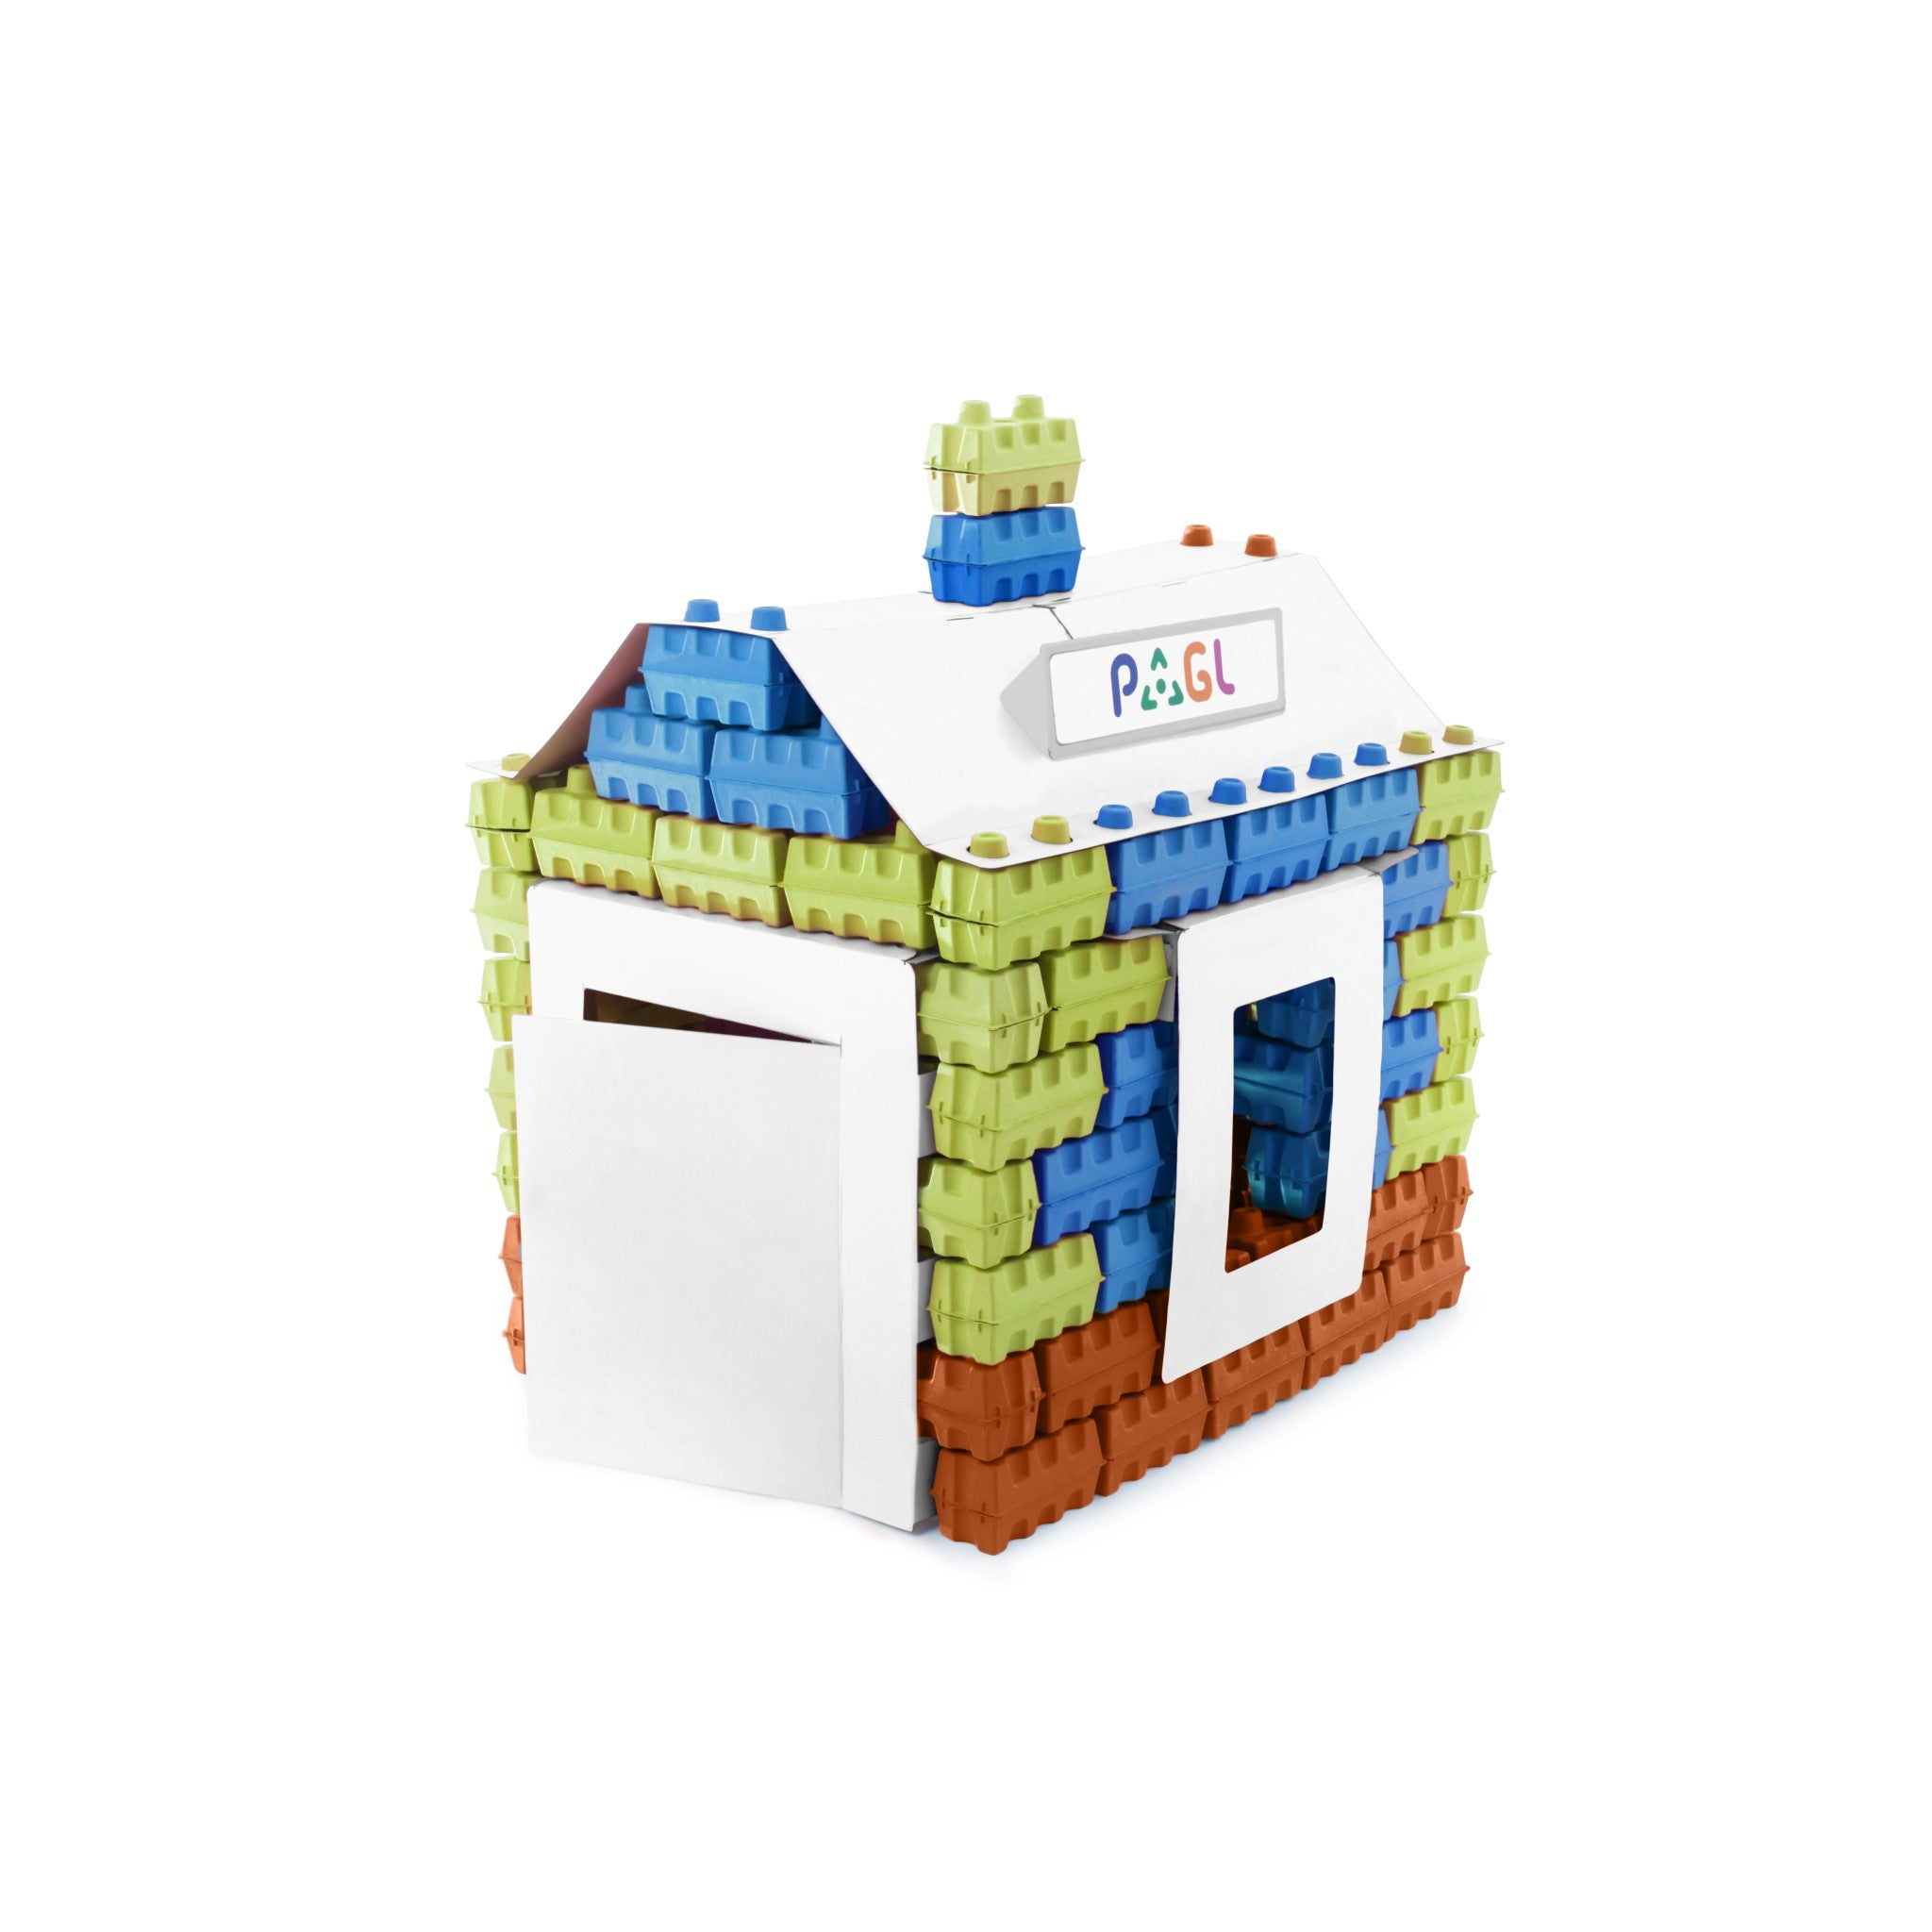 Creative kit - a construction set of 111 multicolored building blocks. Educational toy kit for kids.